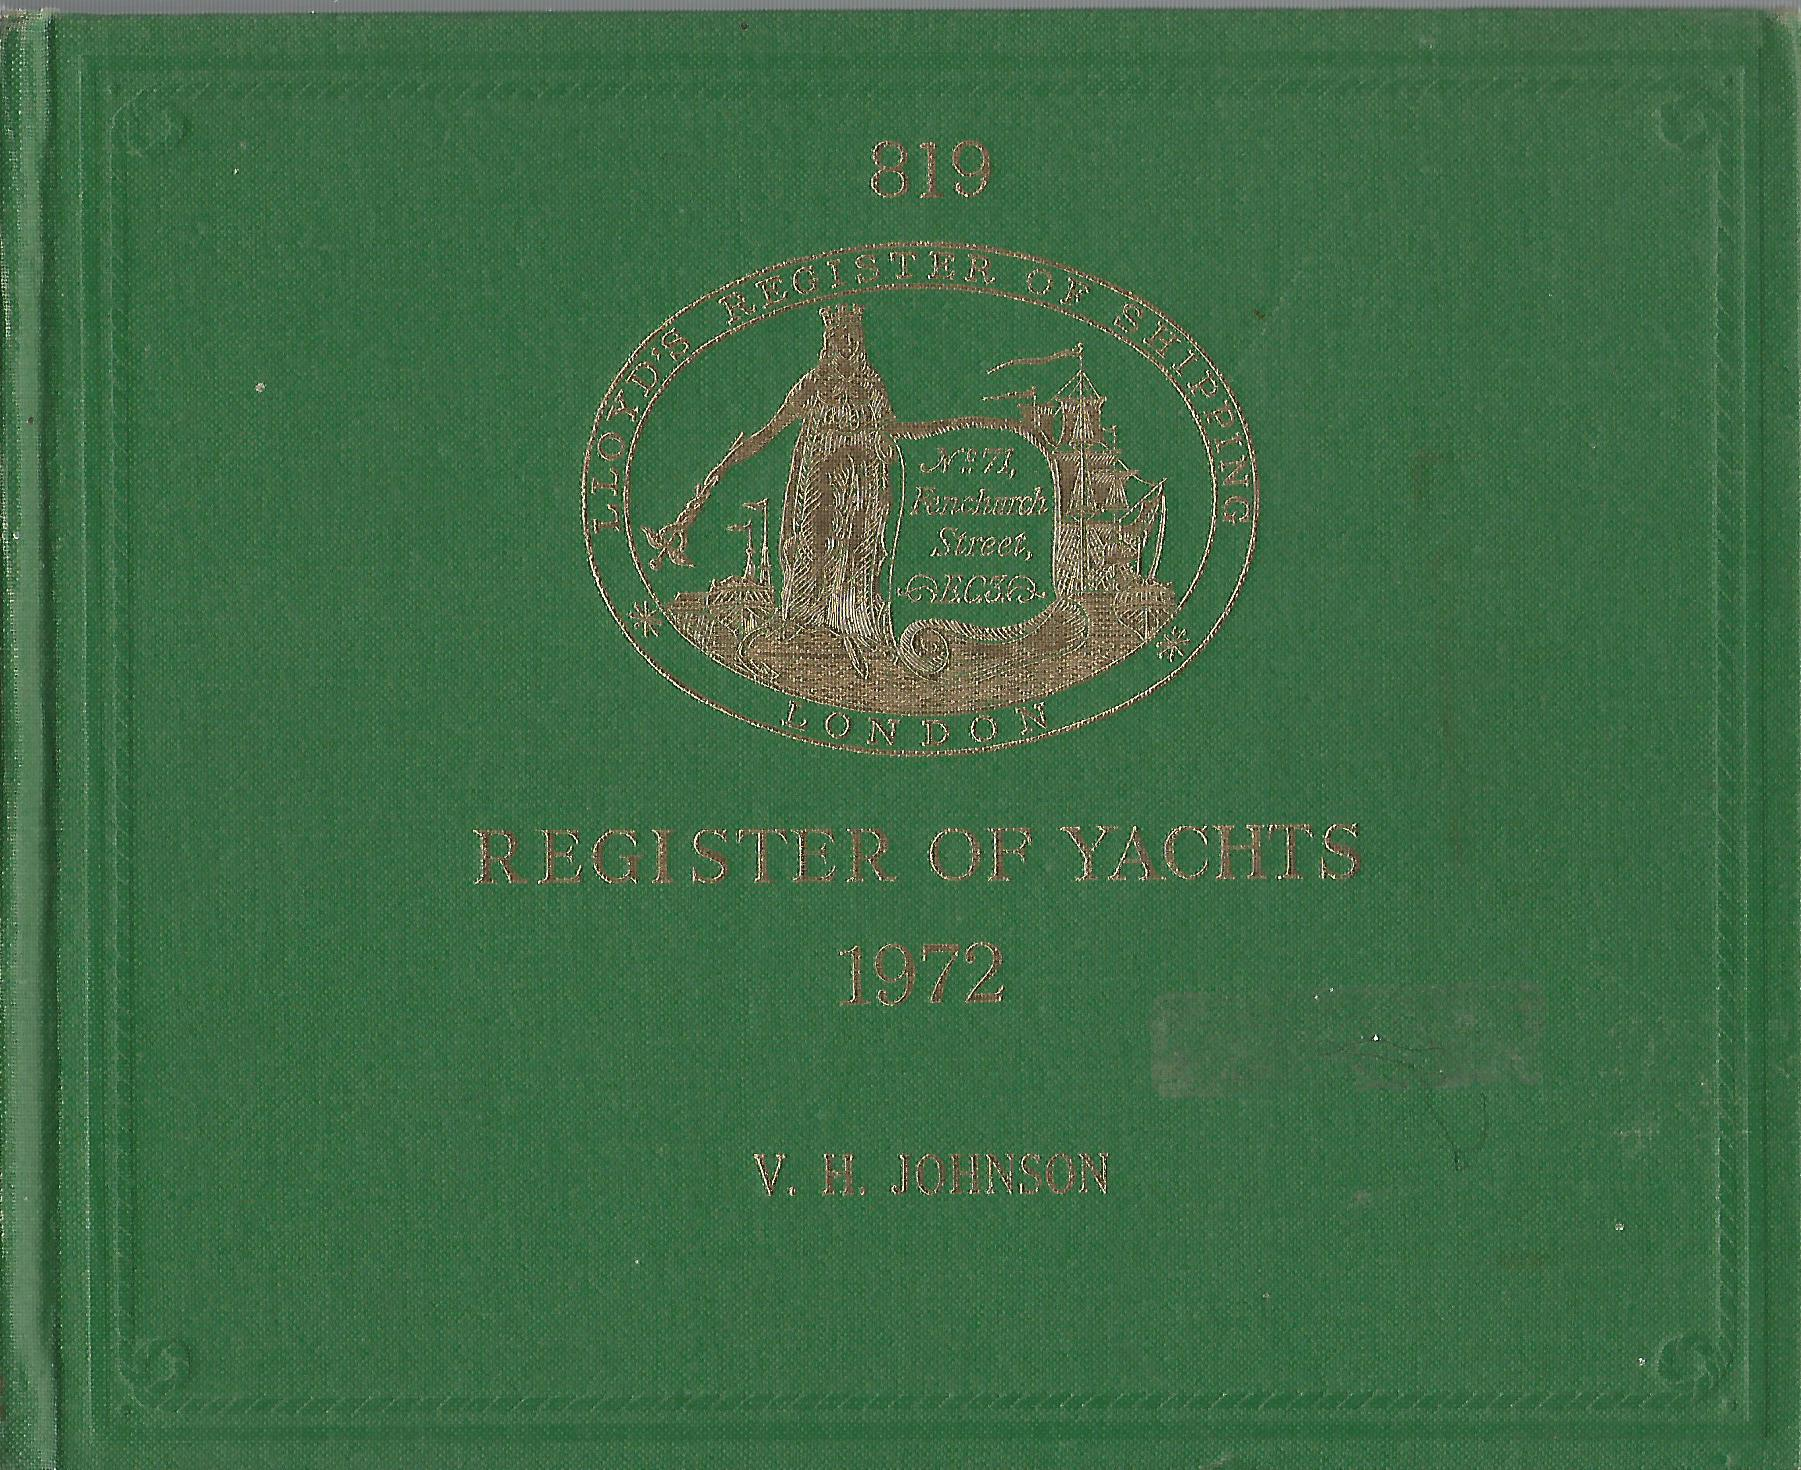 Image for Lloyd's Register of Yachts 1972.